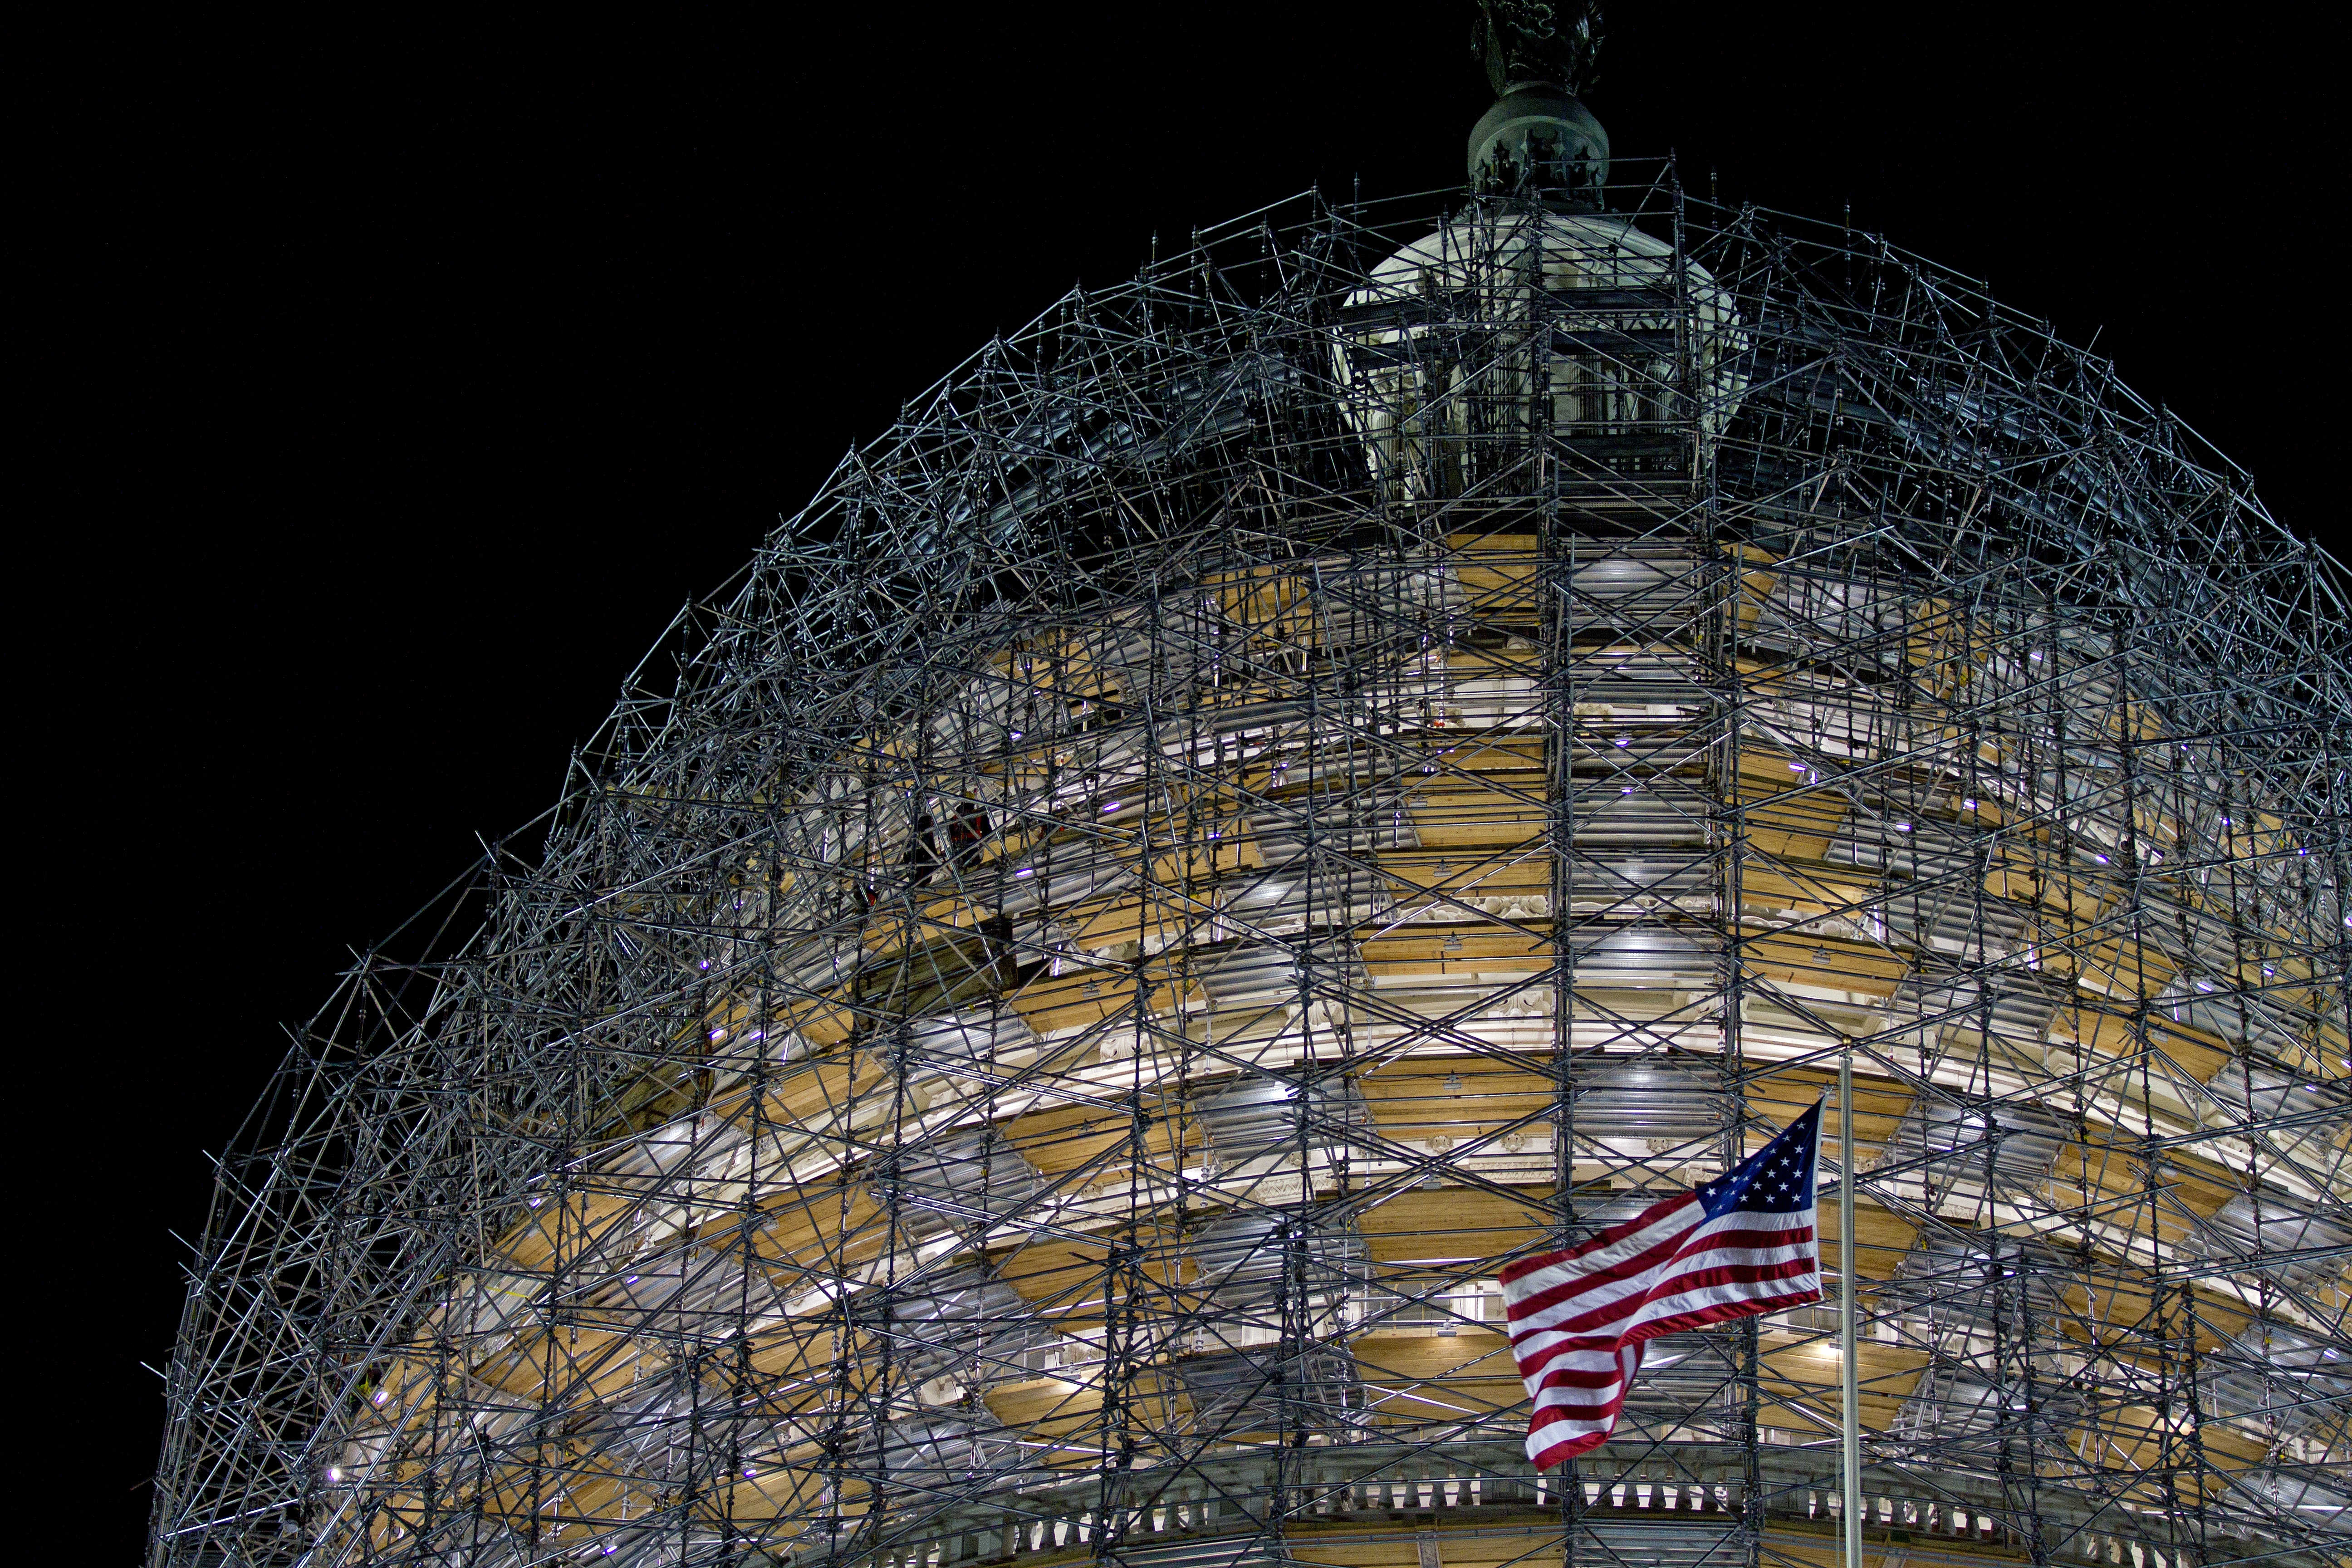 The U.S. Capitol building surrounded by scaffolding